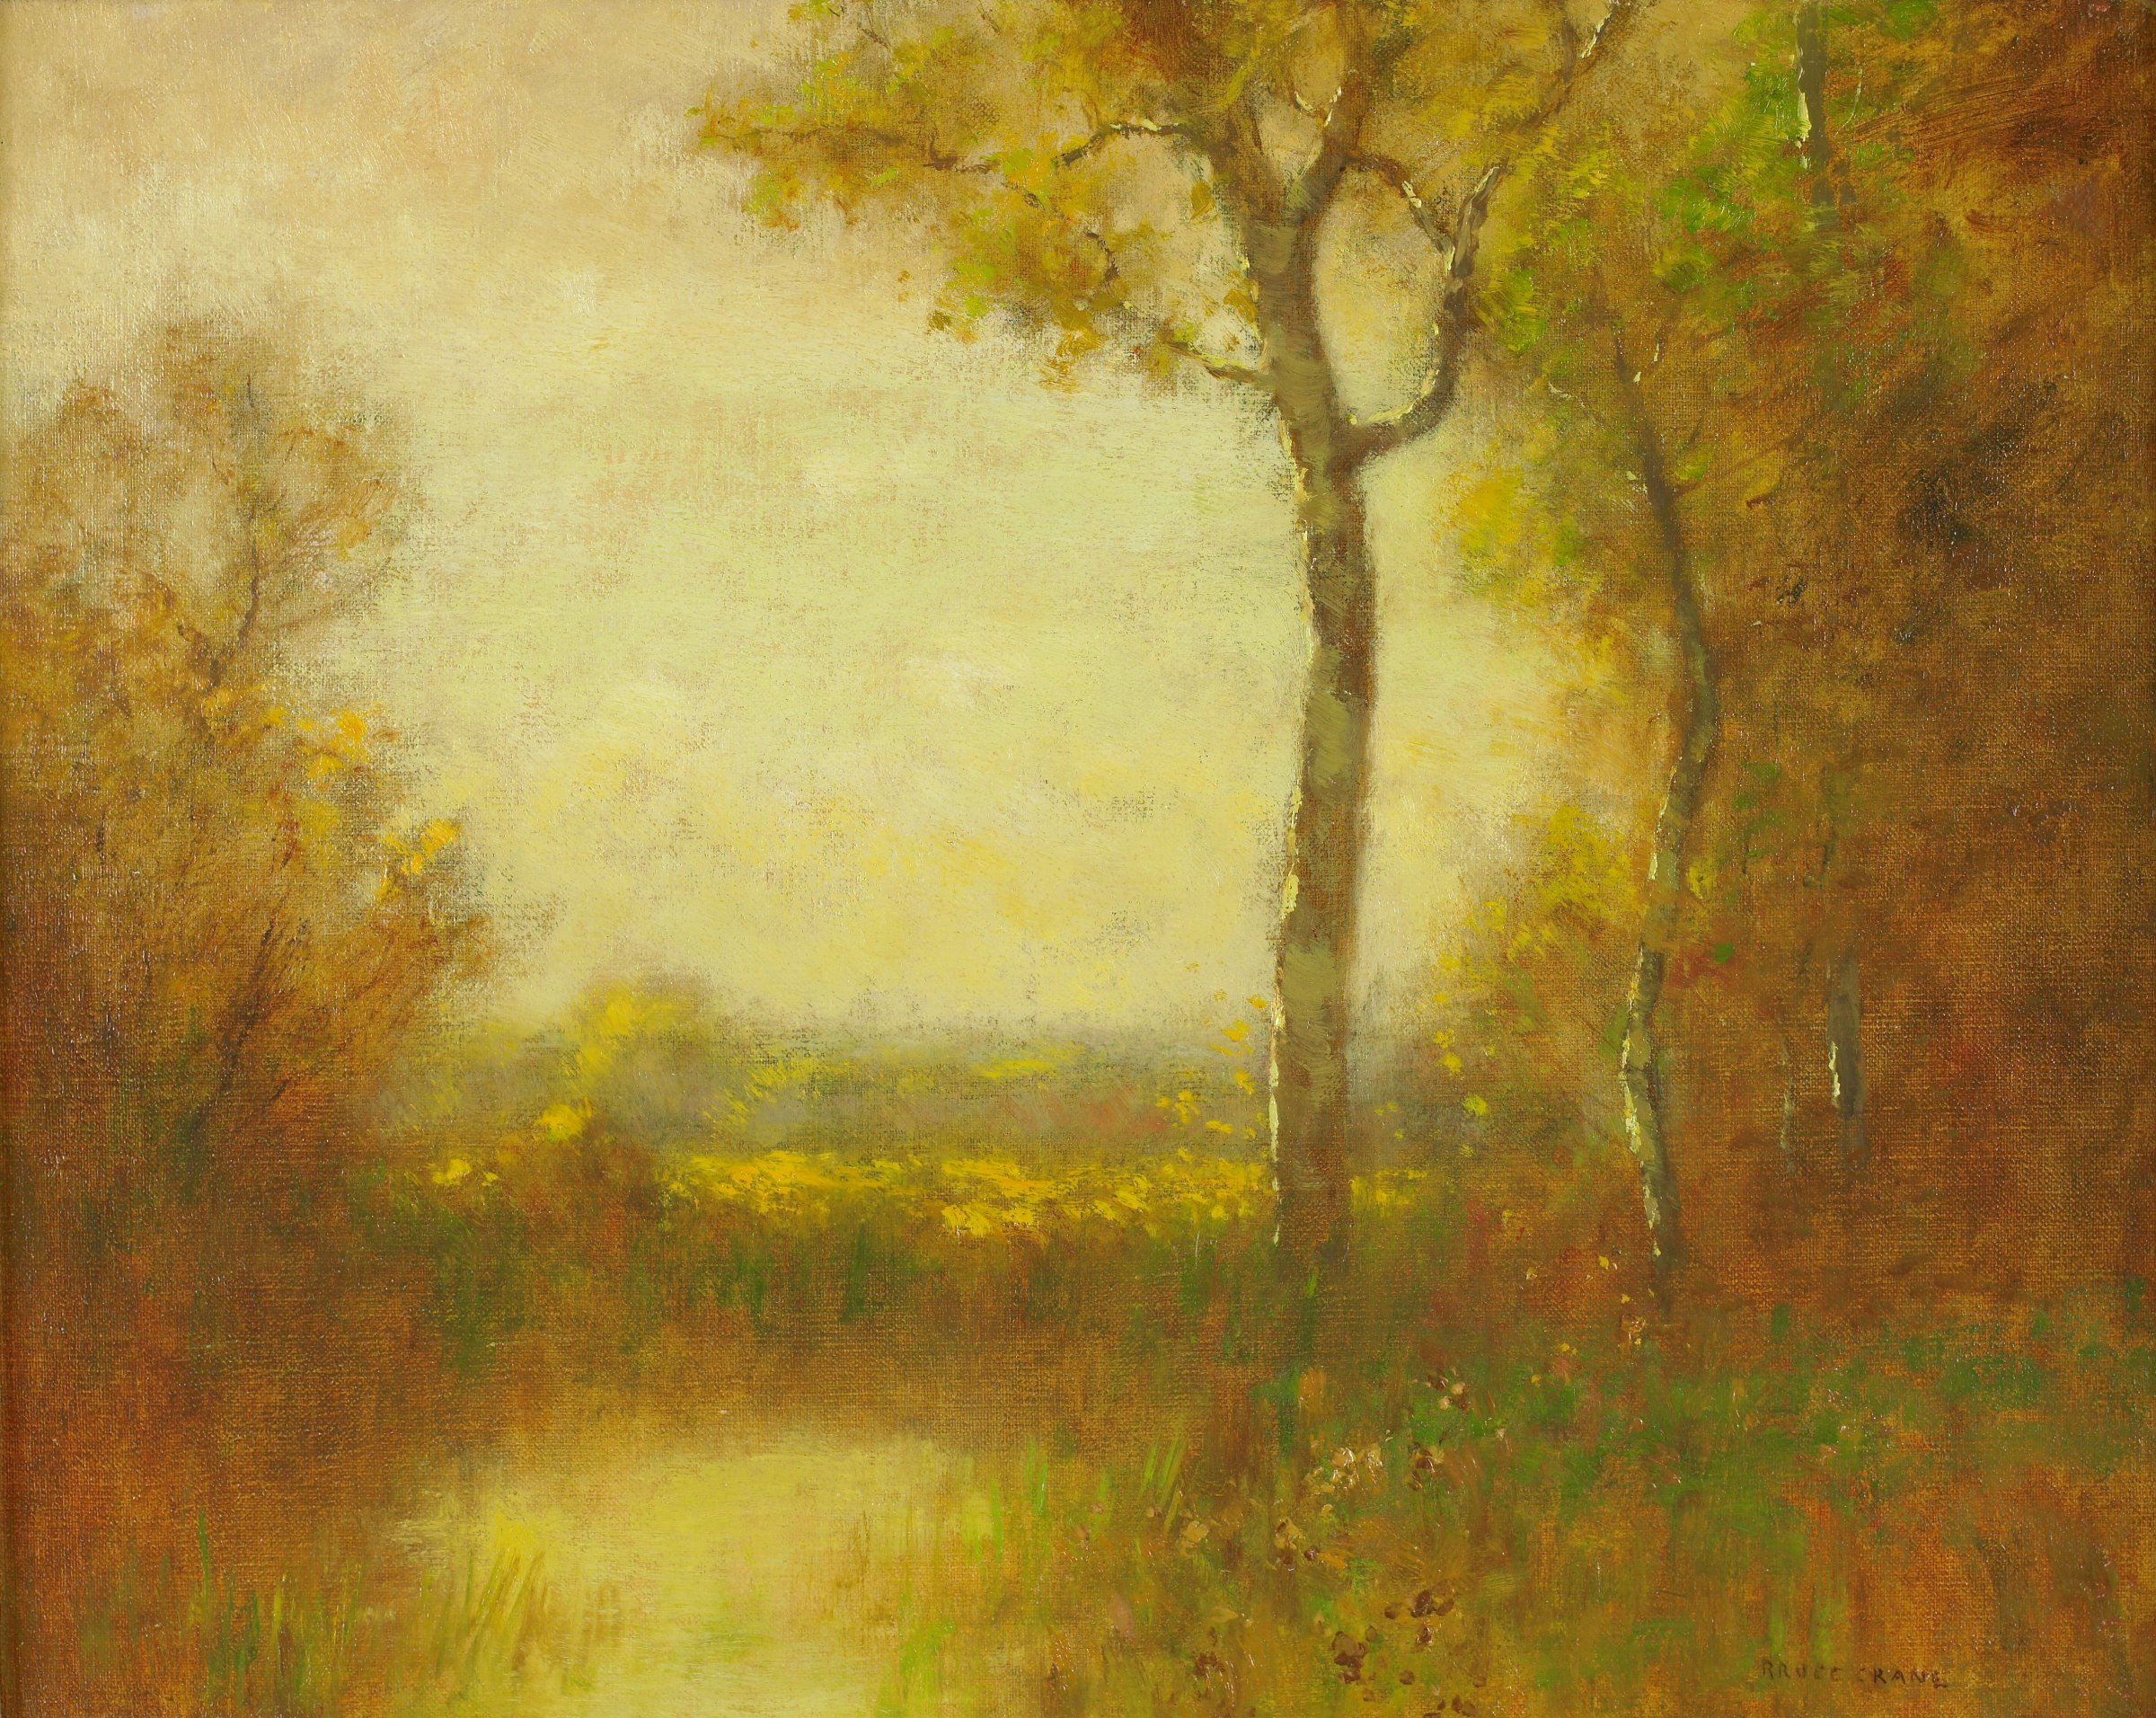 Autumnal scene with rich gold, brown, and dark green coloration. Pond at left; tree in center of composition; wooded area at right.